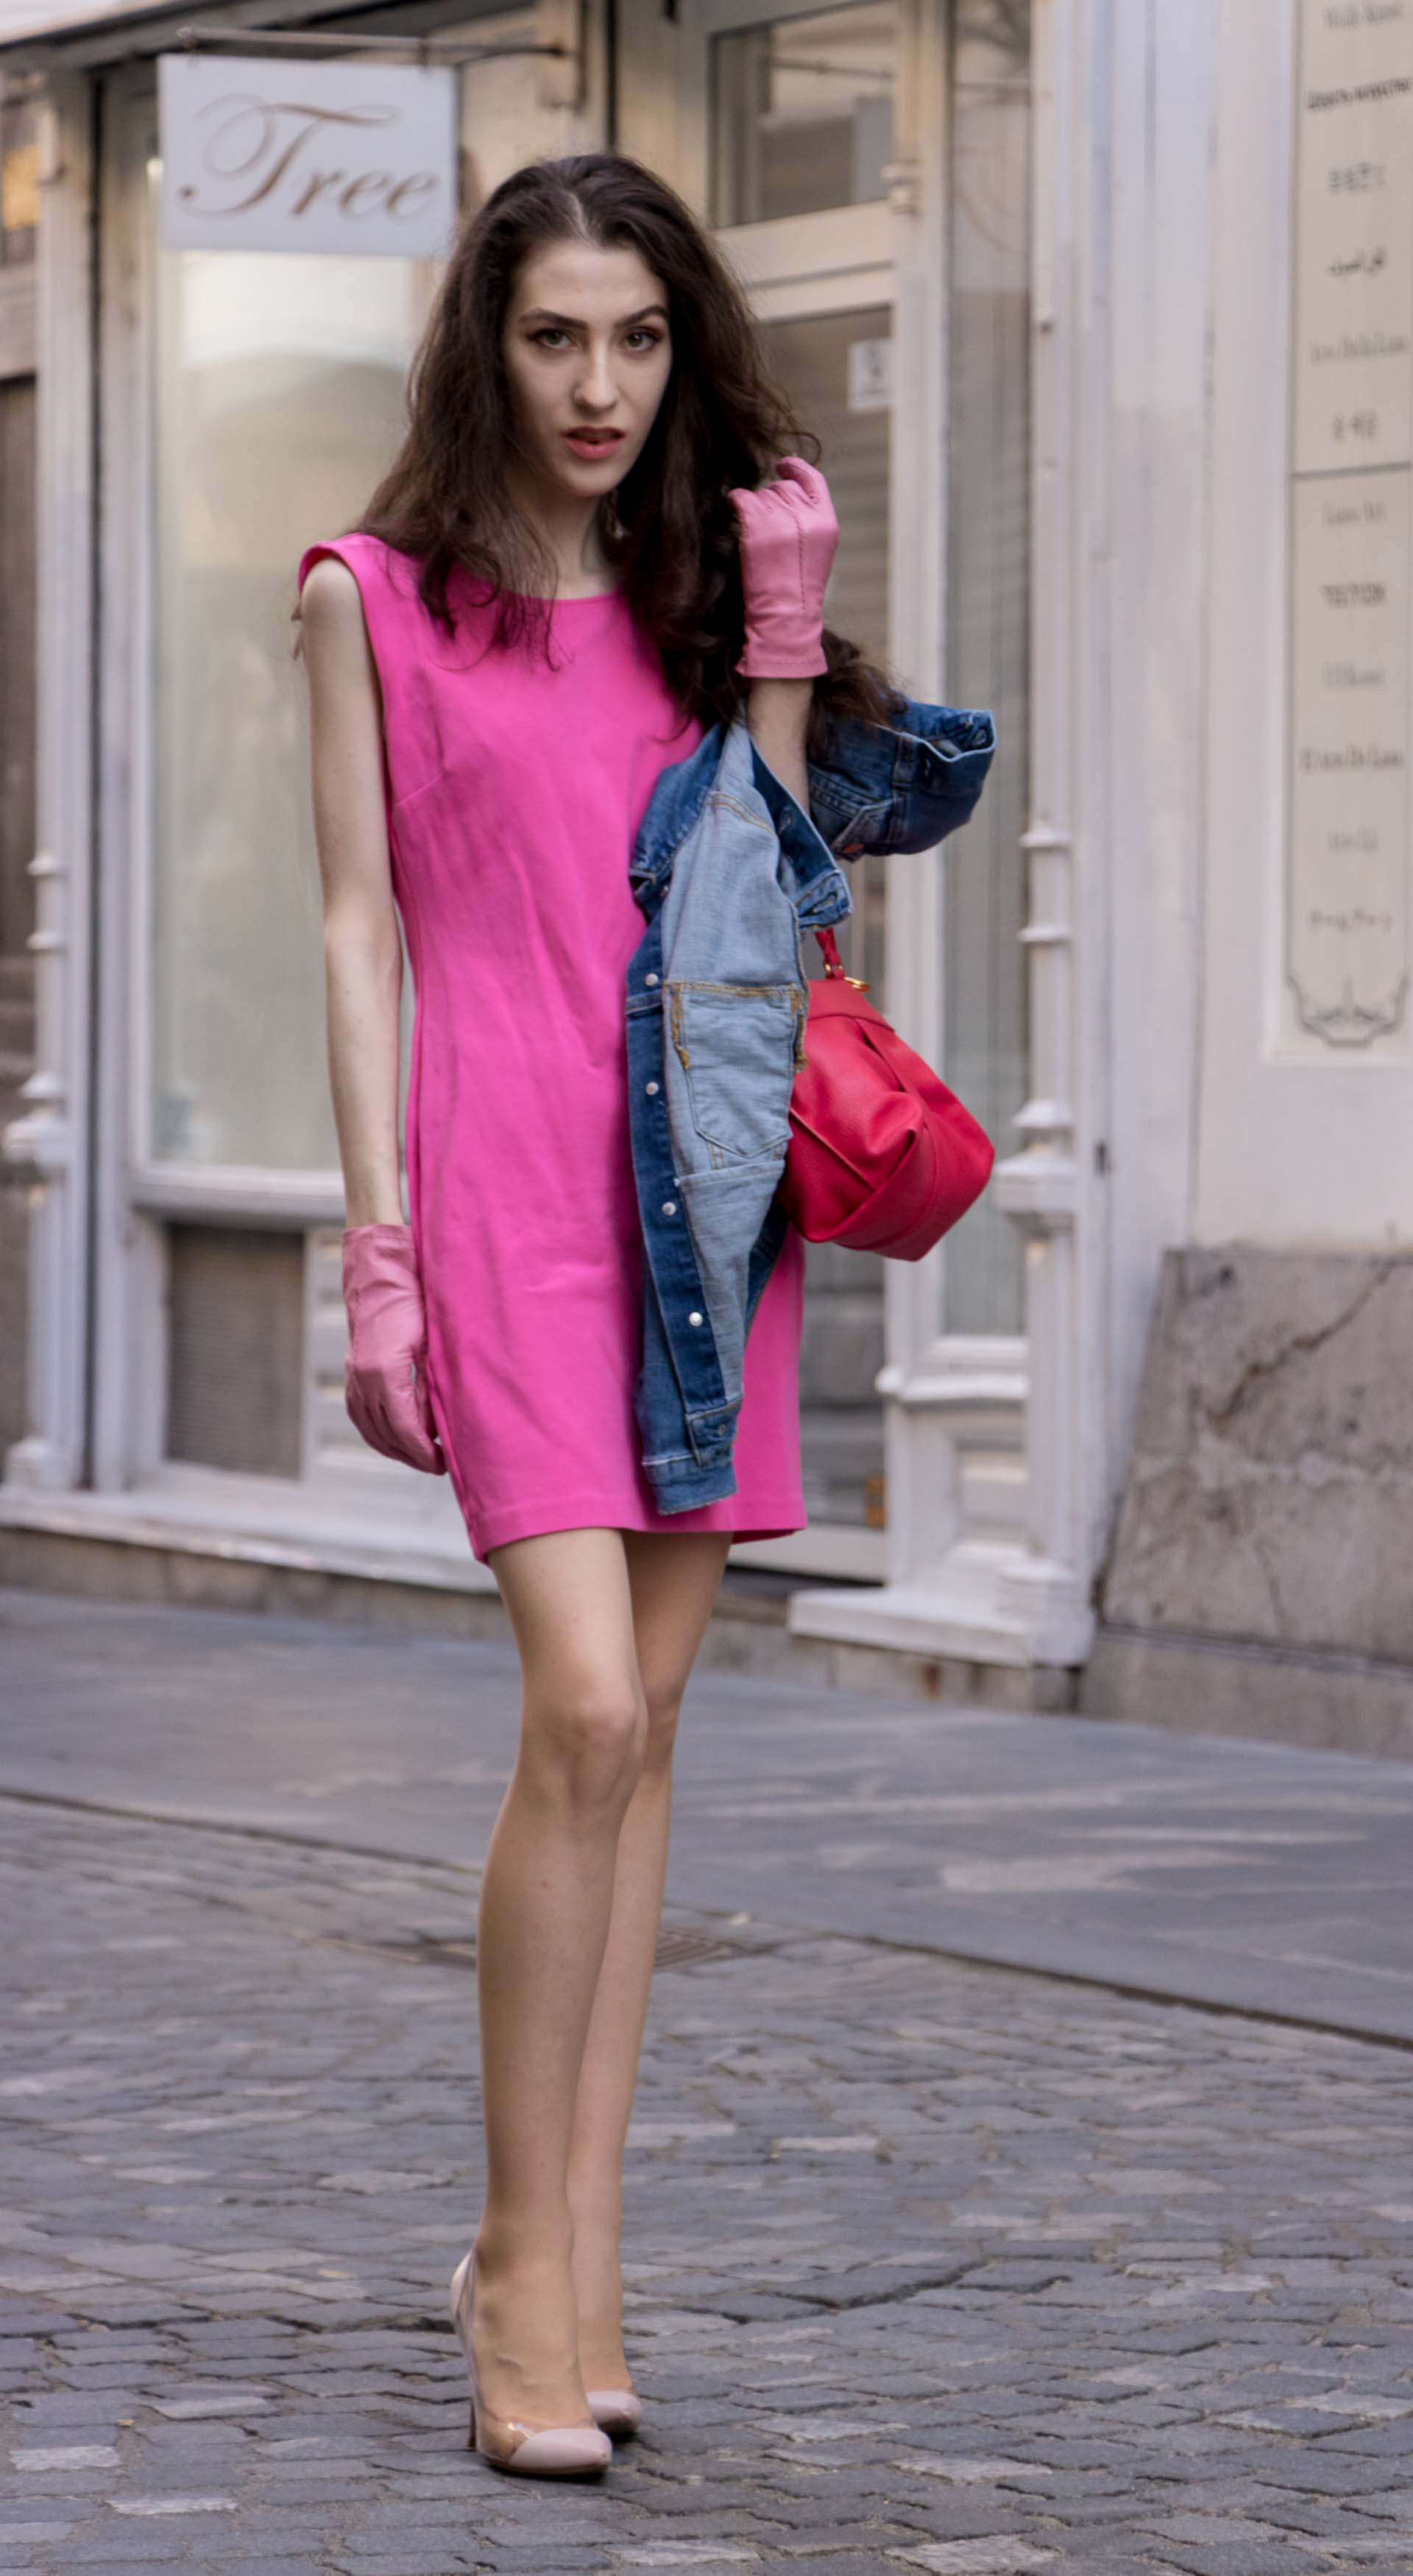 Veronika Lipar Fashion Blogger of Brunette from Wall Street wearing H&M denim jacket, pink short dress, blush Gianvito Rossi plexi pumps, pink Forzieri gloves, See by Chloé pink top handle bag, Adam Selman x Le Specs white cat eye Lolita sunglasses while standing on the street in Ljubljana